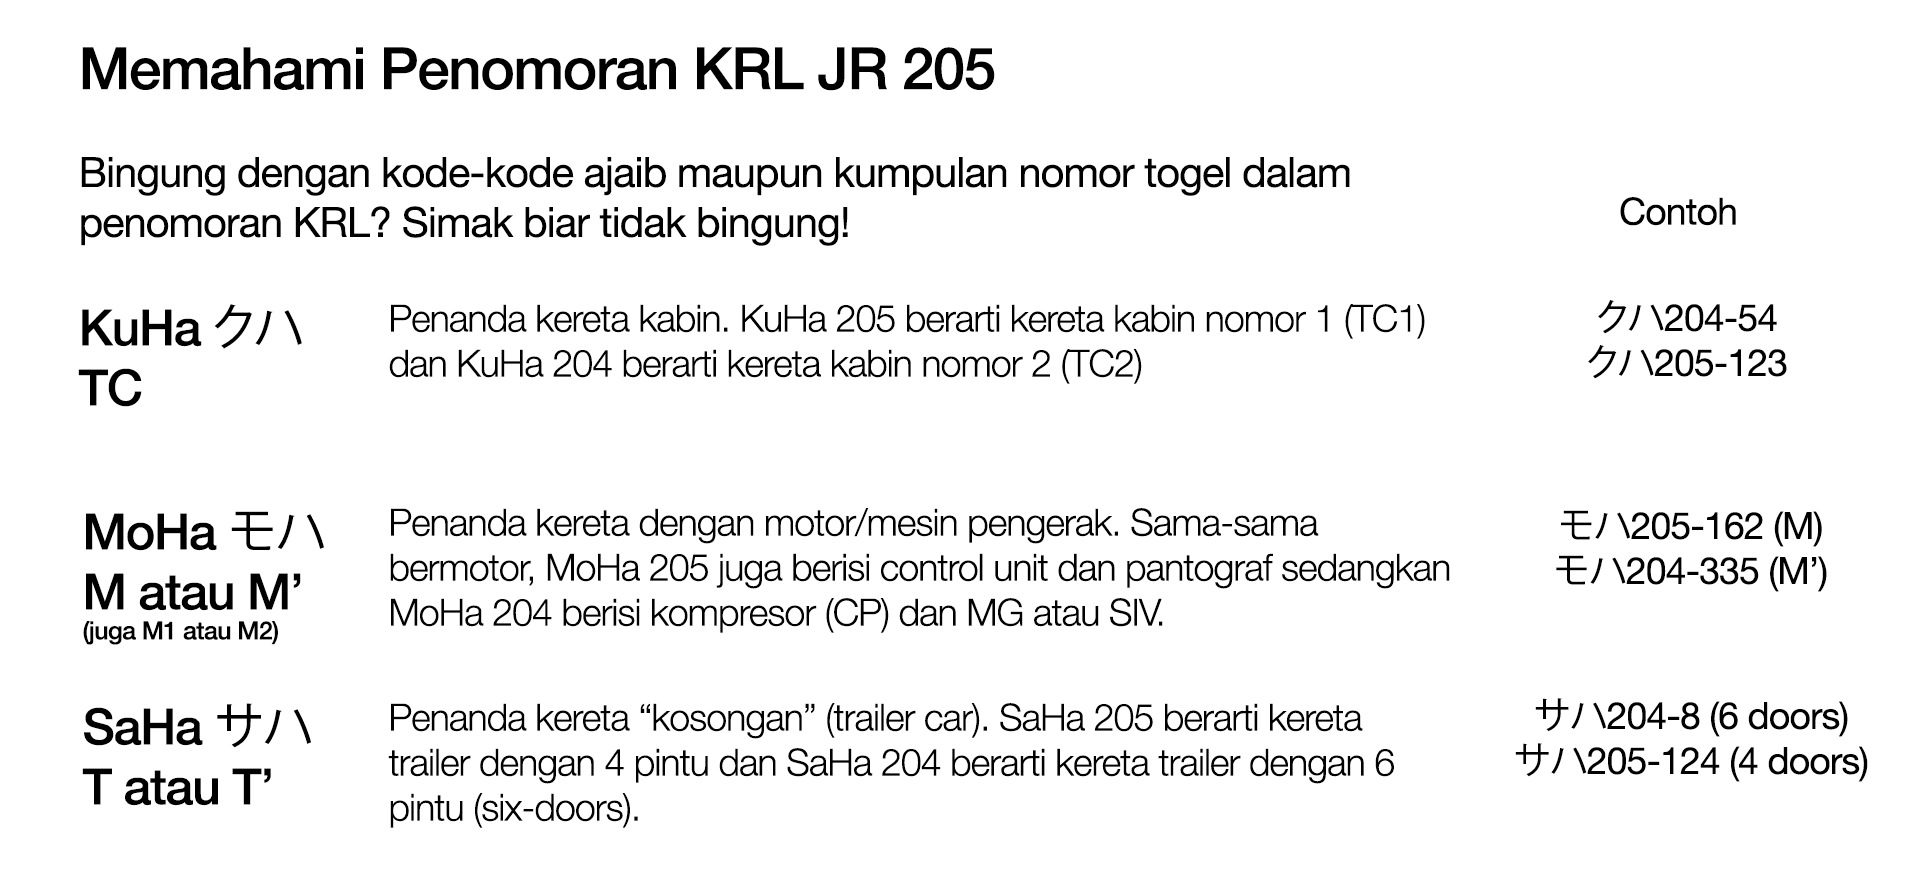 penomoran-guide-krl-jr-205